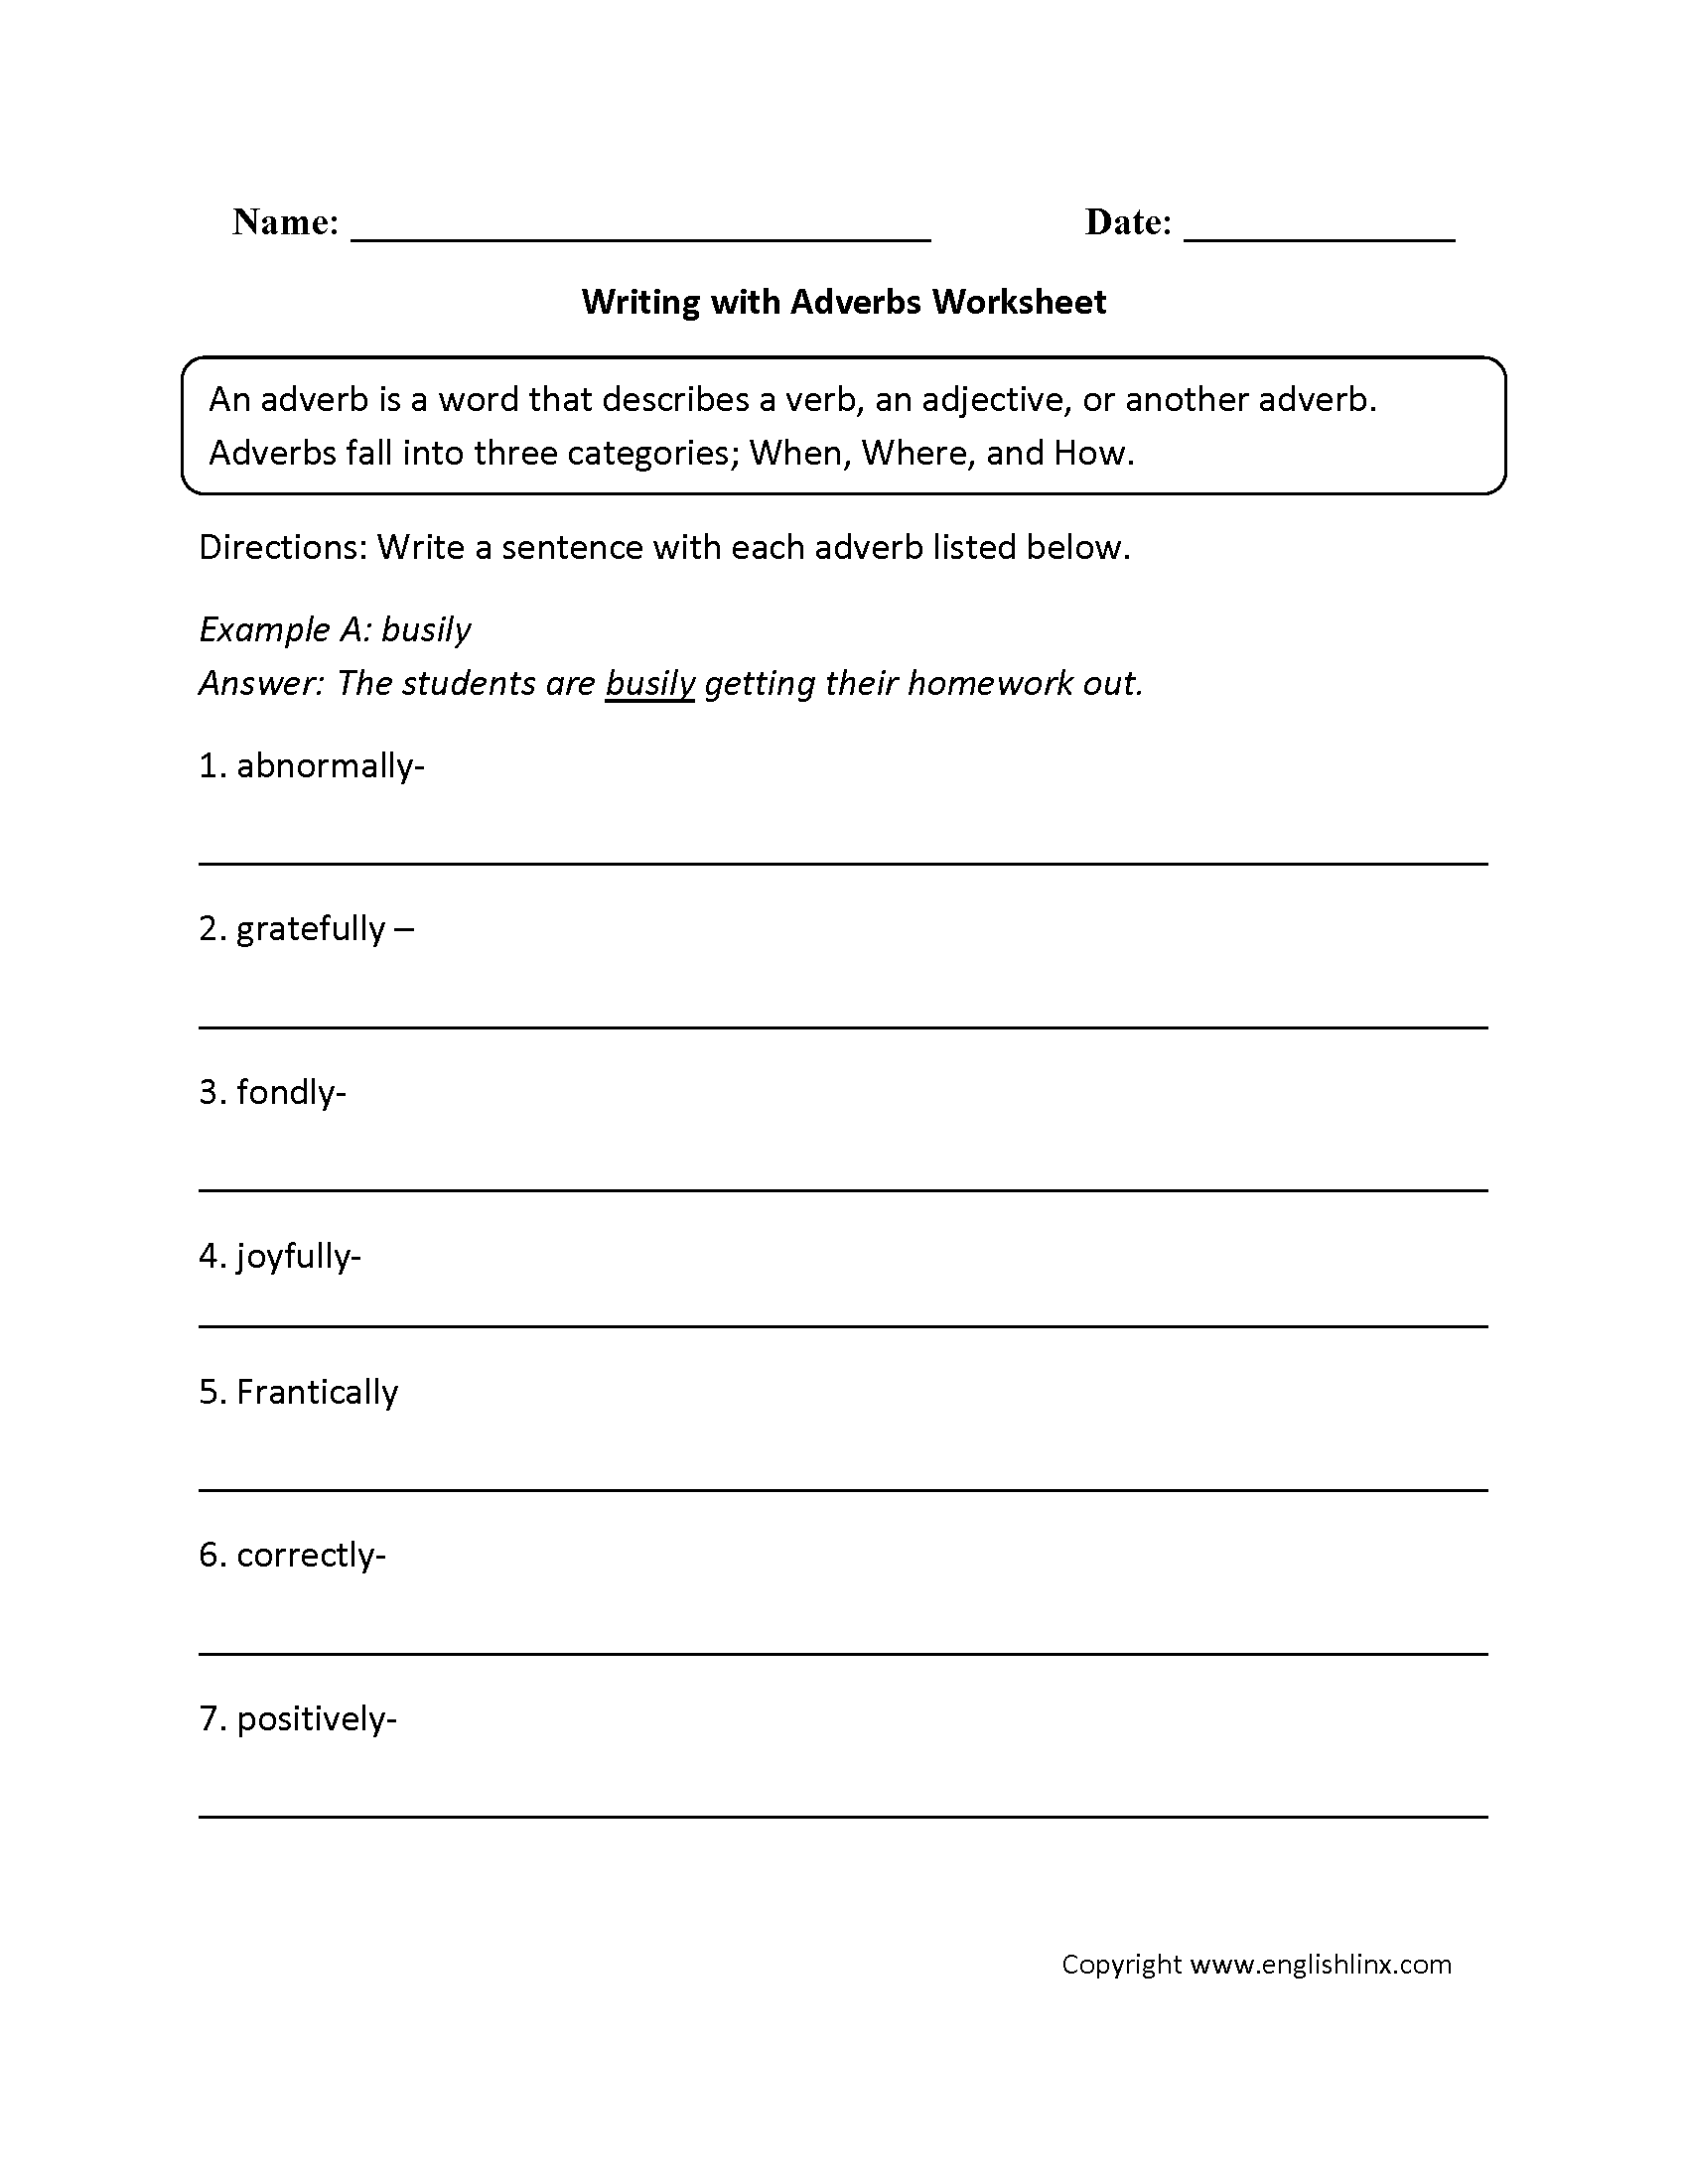 worksheet Adverbs Worksheet Year 2 adverbs worksheets regular grades 6 8 worksheets